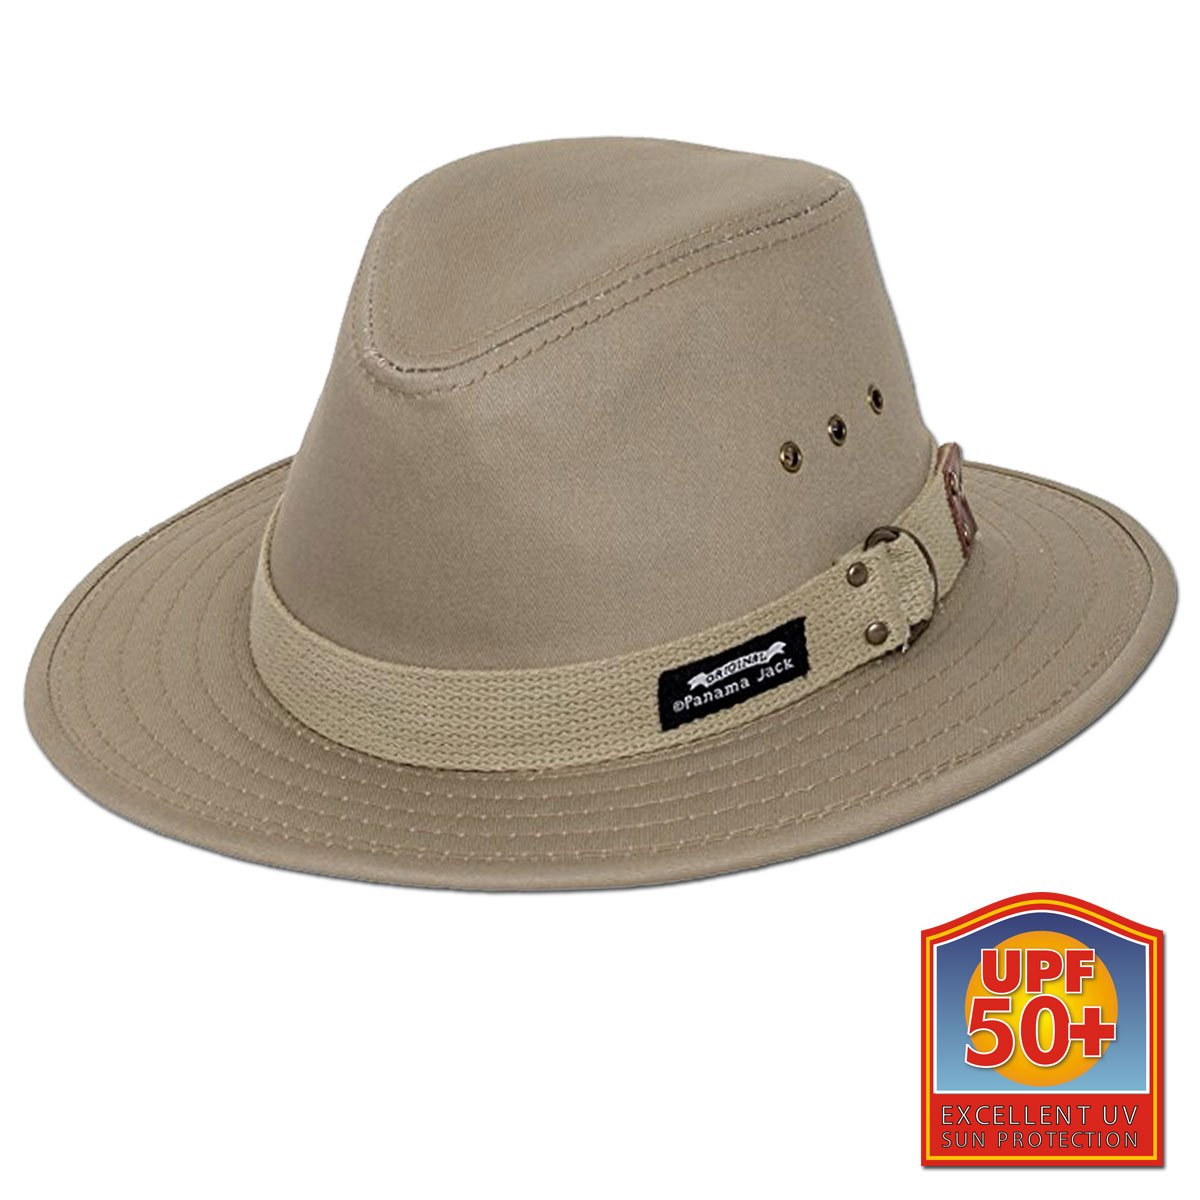 Panama Jack Original Canvas Safari Hat d43f8e3bf48d